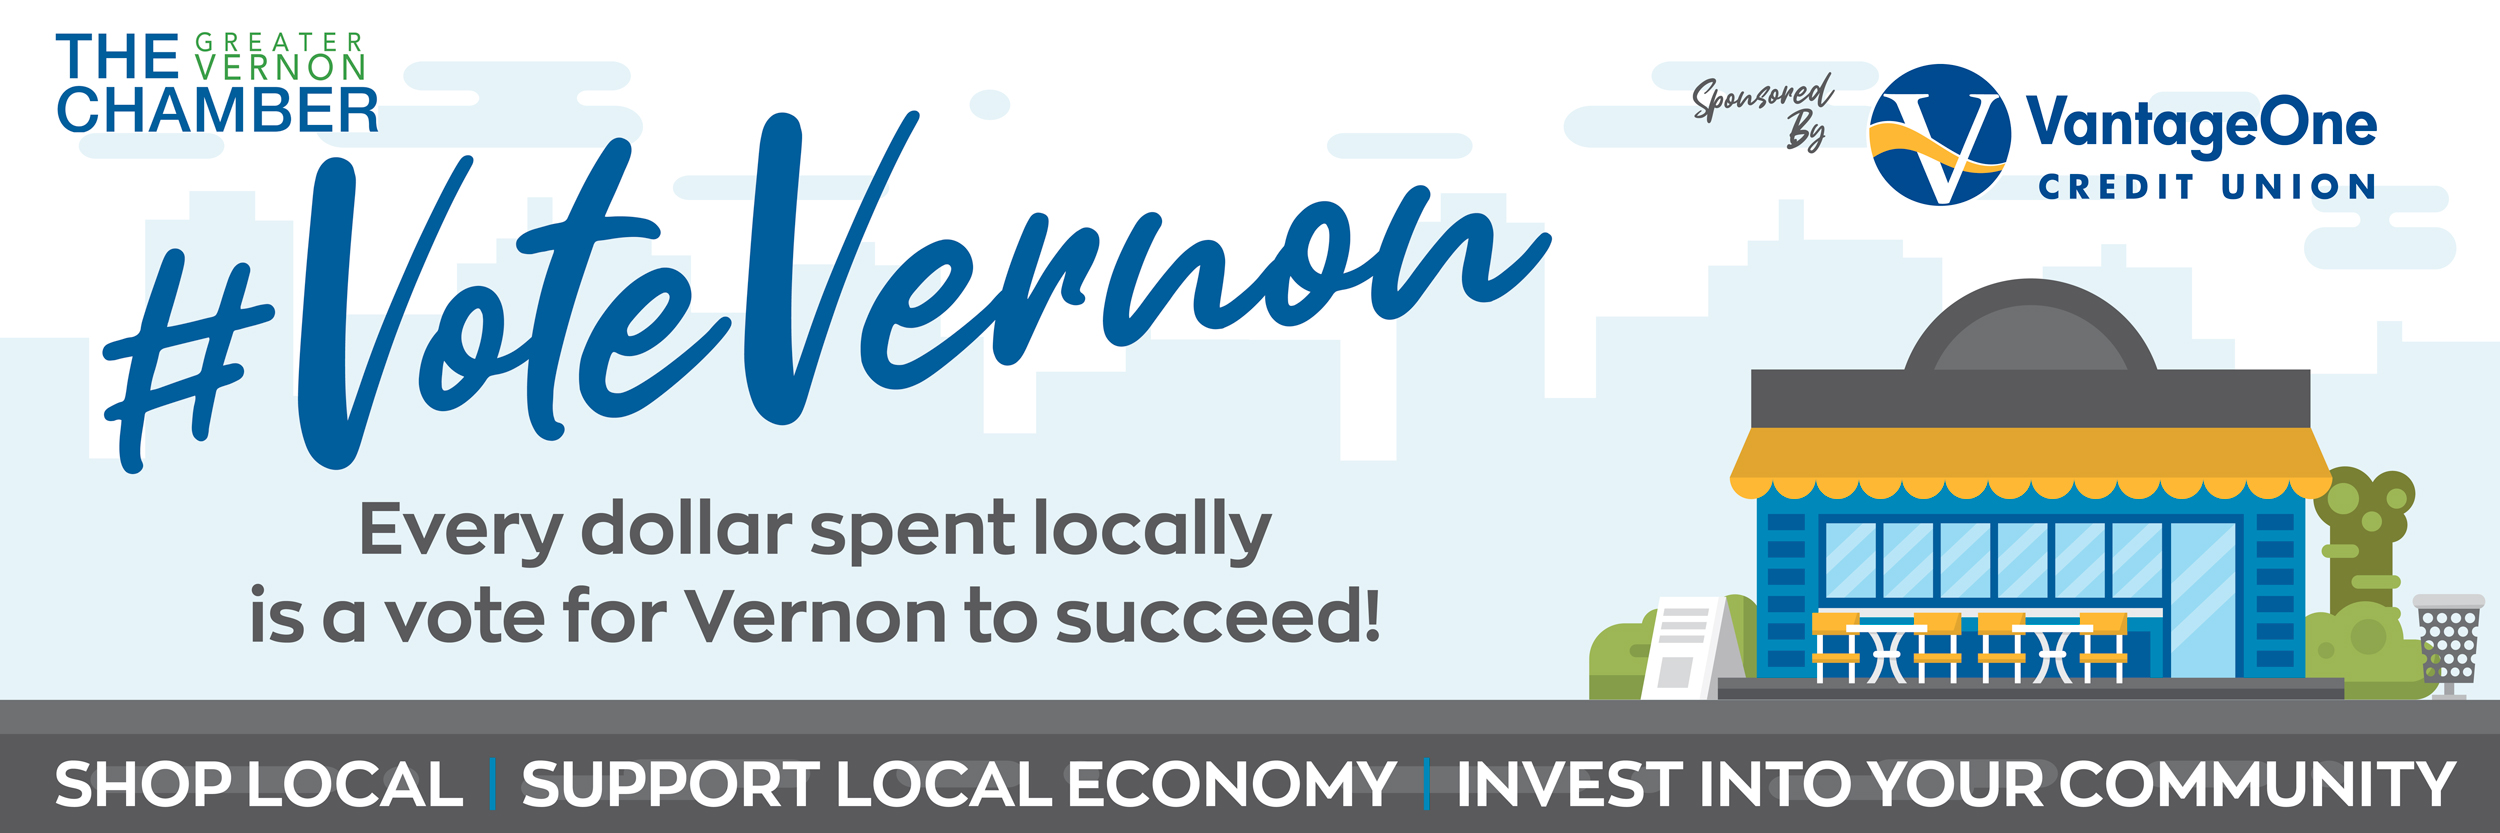 #votevernon - shop local